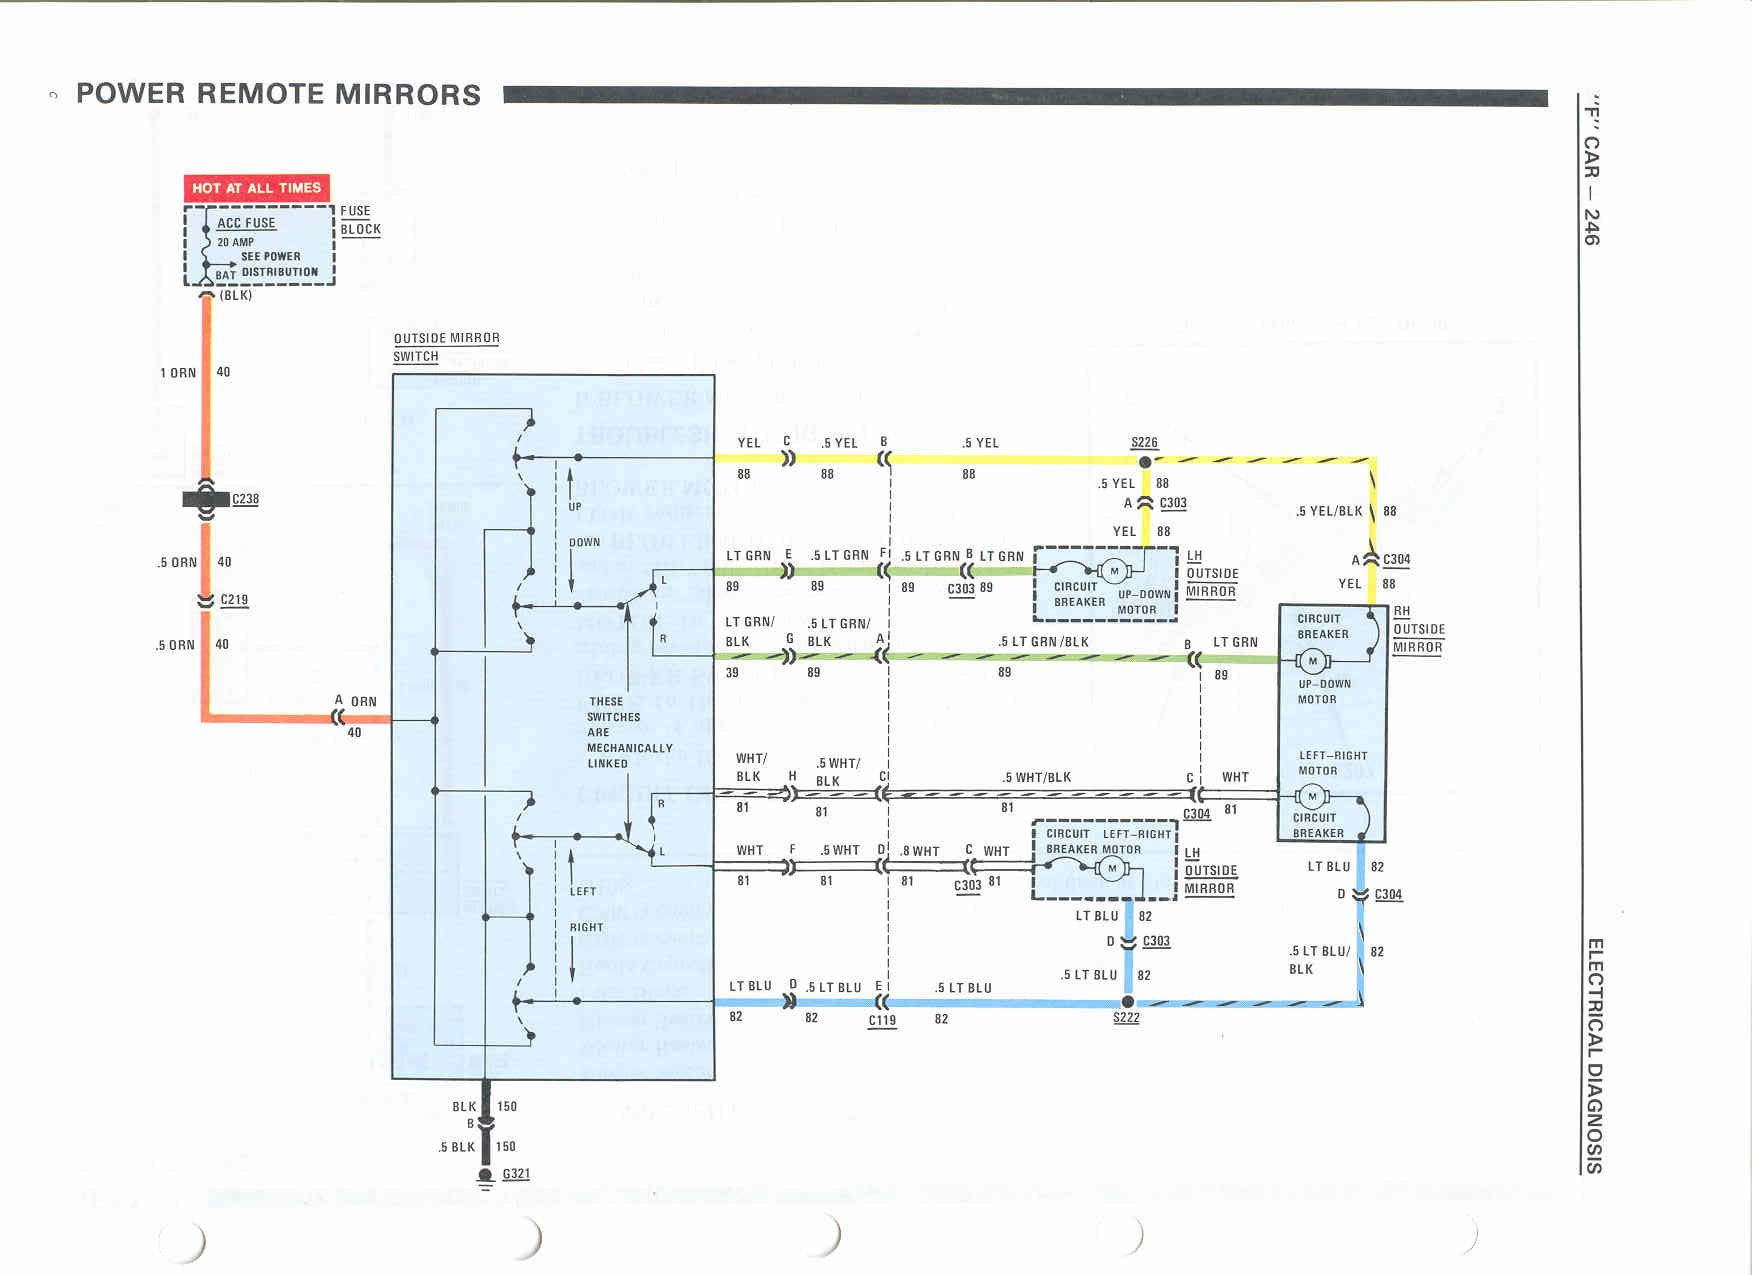 camaro berlinetta wiring diagram shop manual rh berlinetta info 84 camaro engine wiring diagram 1984 camaro engine wiring diagram